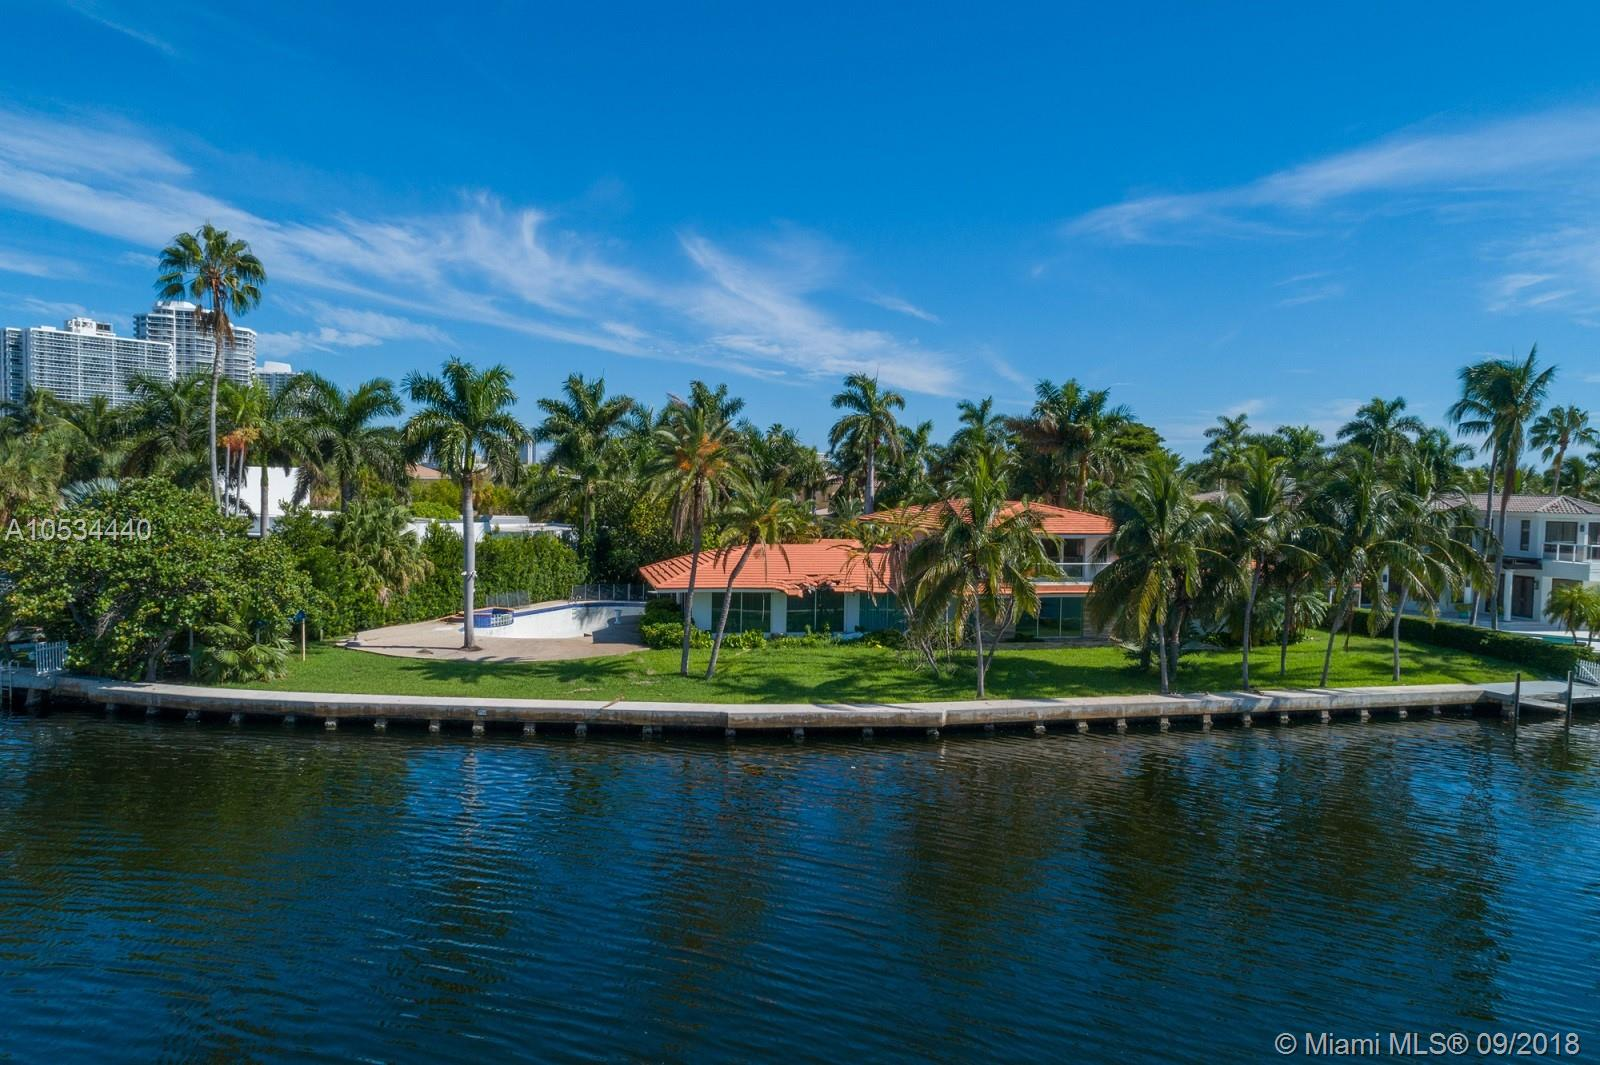 The Most Magnificent Intracoastal Property in all of Golden Beach. Situated on a Point cul-de-sac Lot with exquisite Mesmerizing Views, straight to Downtown, Miami and breathtaking Sunsets. Almost 200 ft. of Water Frontage!